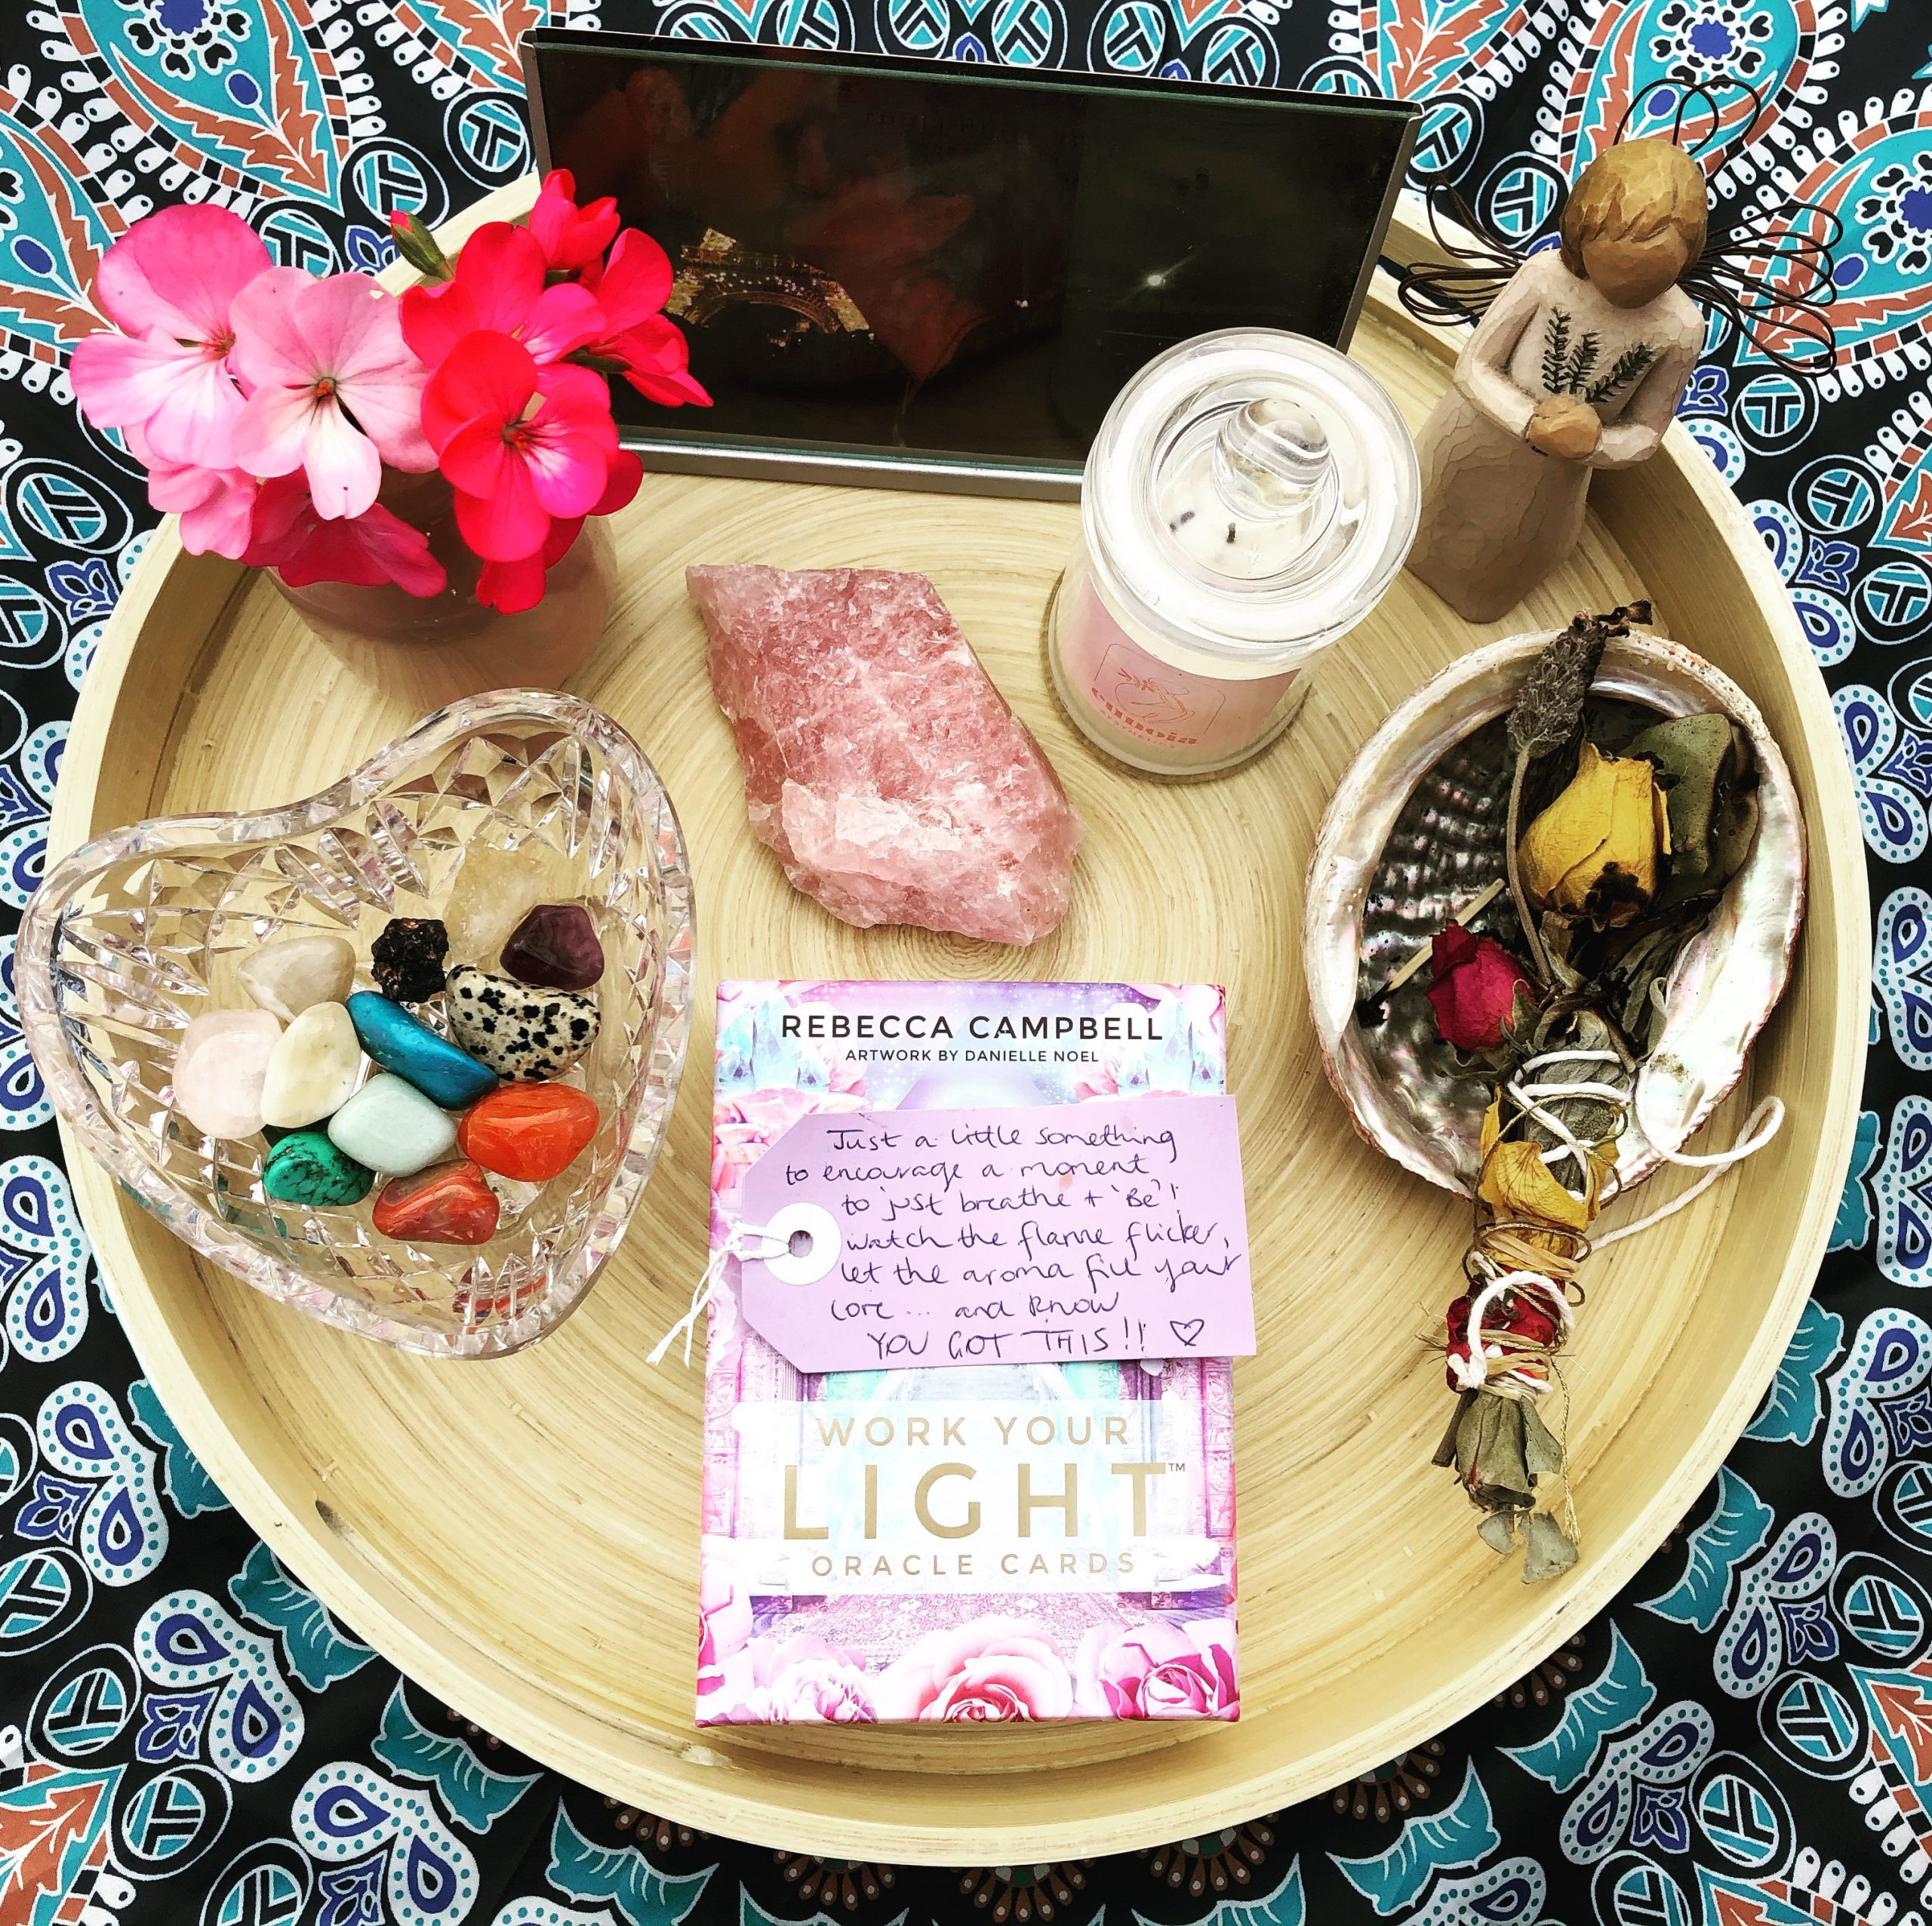 You are currently viewing Setting up sacred space at home to nourish you in any moment.